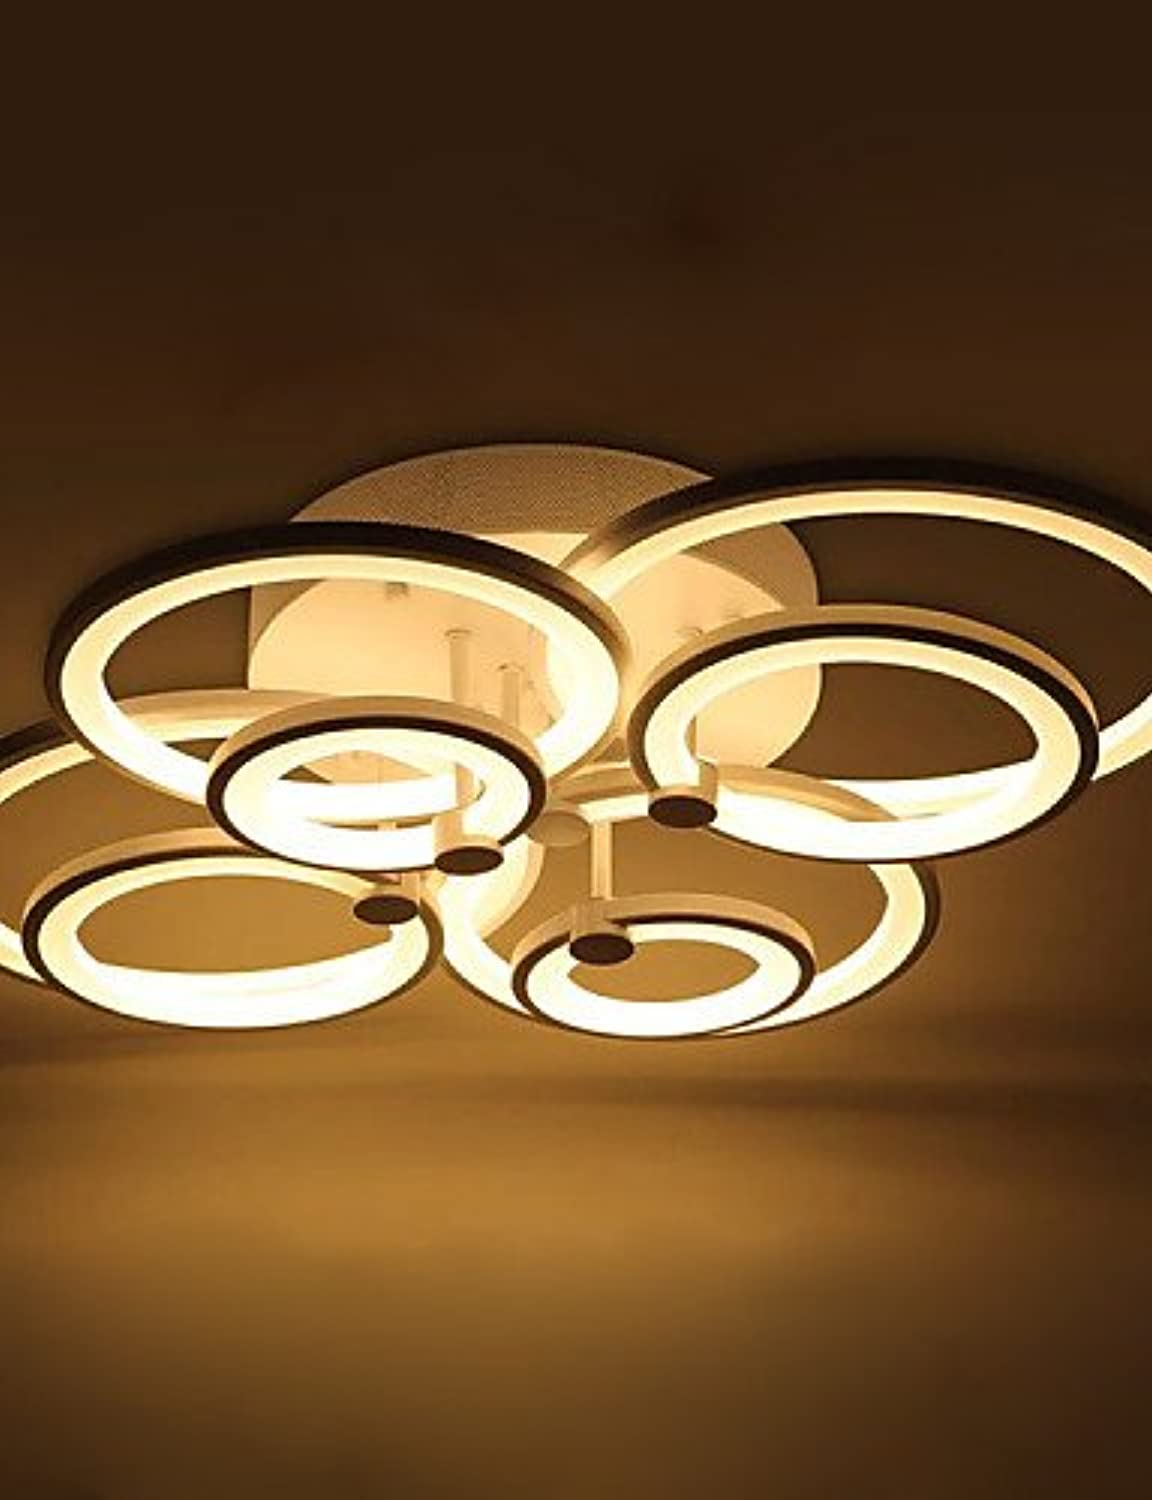 Decorative Modern Acrylic Flush Mount LED Ceiling Lamp Weiß Farbe